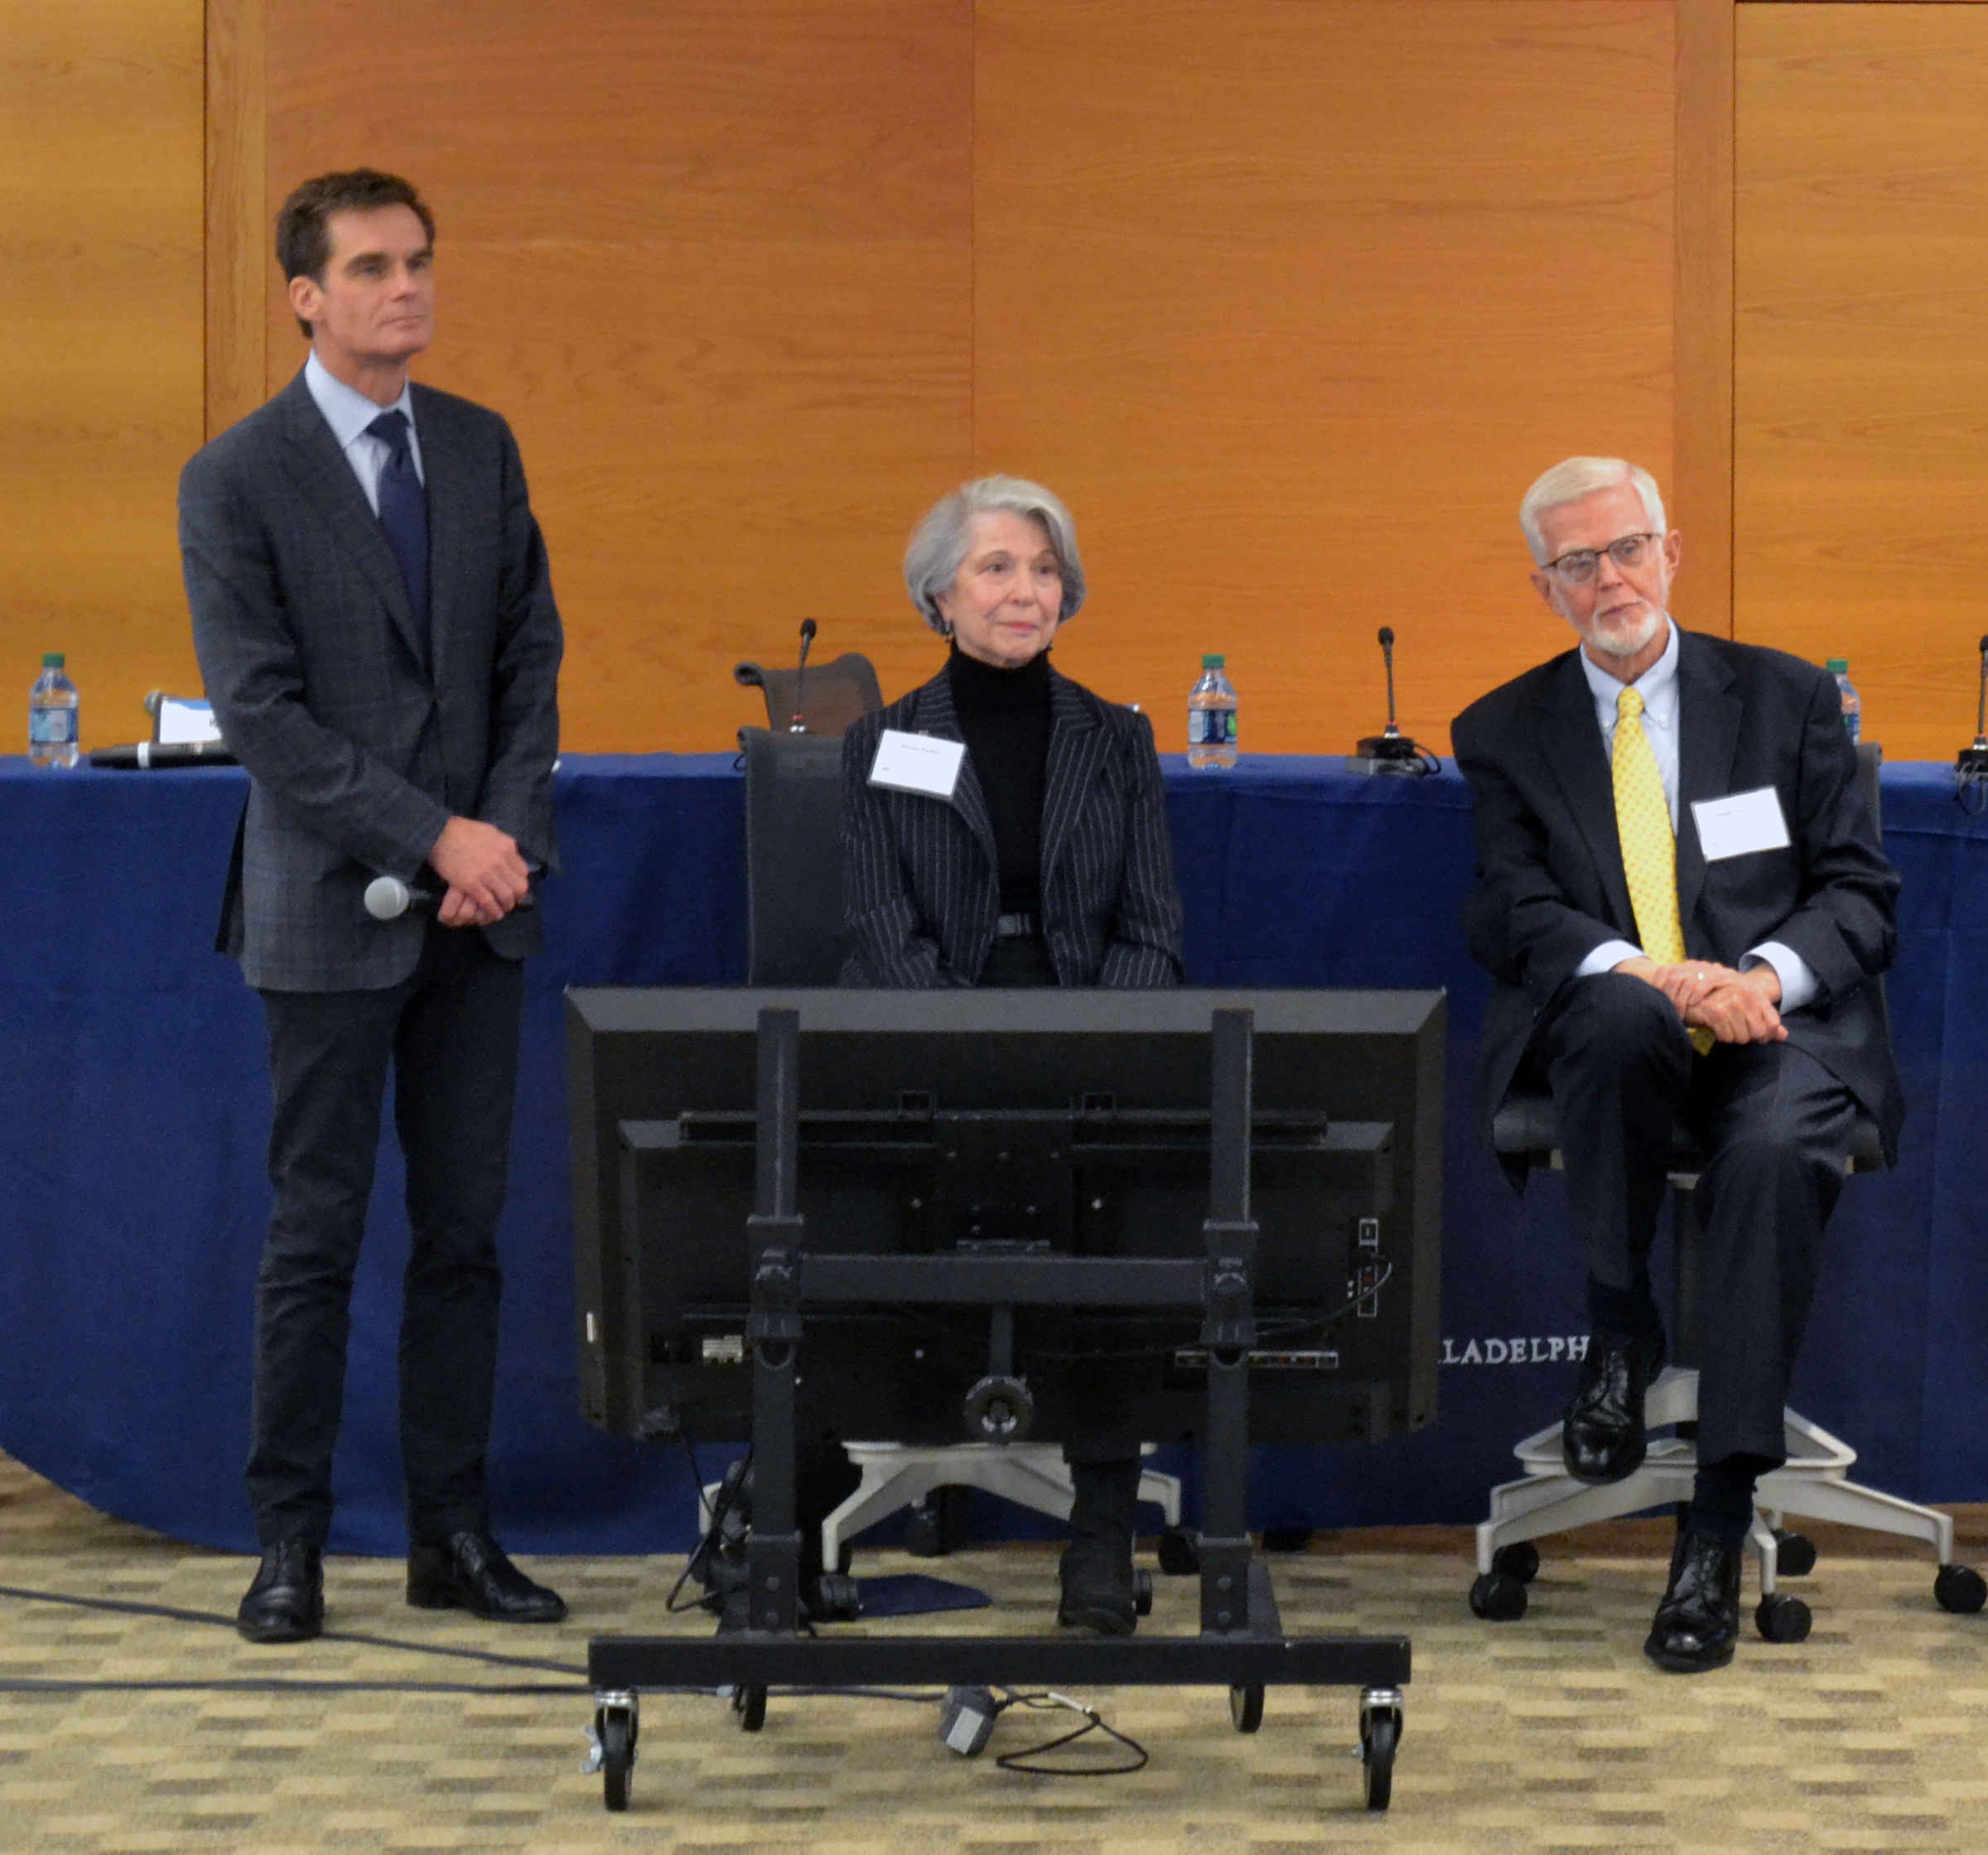 Renee Packel, center, told her story at the Conference on Aging, Cognition, and Financial Health at the Federal Reserve Bank of Philadelphia in November 2017. (Credit: Terrence Casey/Penn Memory Center)